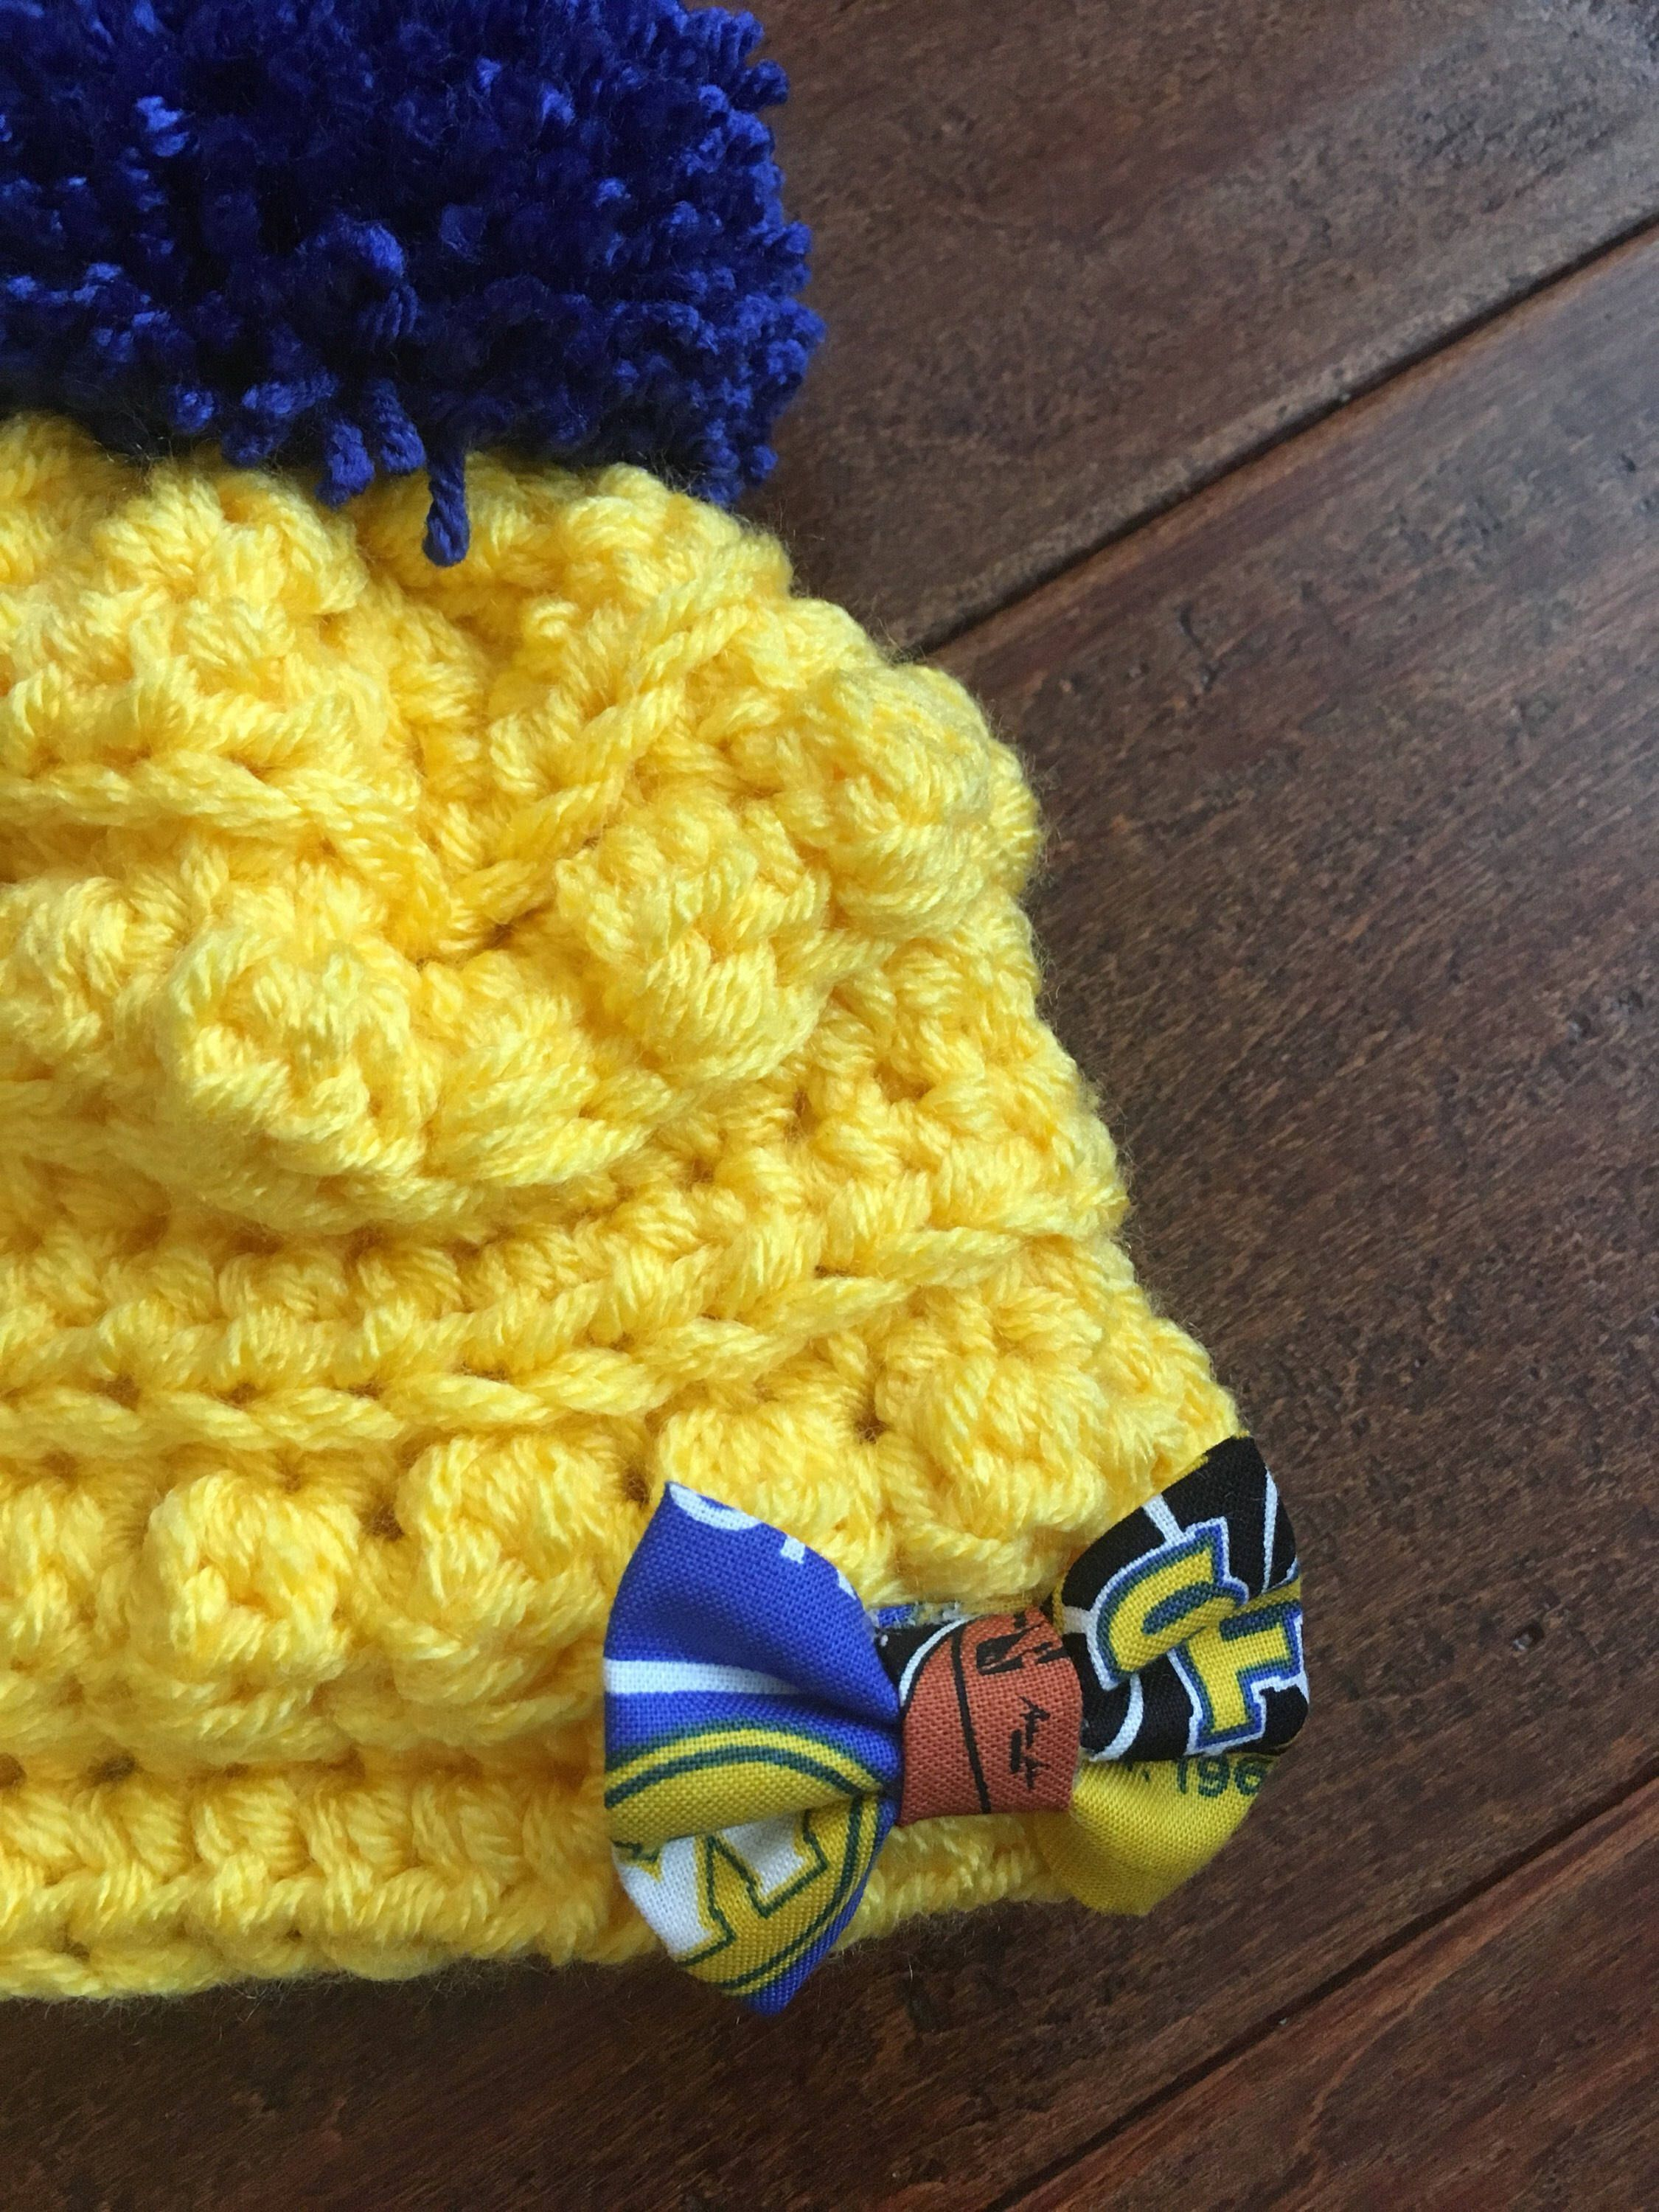 4ef6d5f43d7264 Golden state warriors Crocheted baby beanie with pom pom. Yellow hat with blue  pom pom and Warriors bow. Winter baby hat. Perfect gift for her.